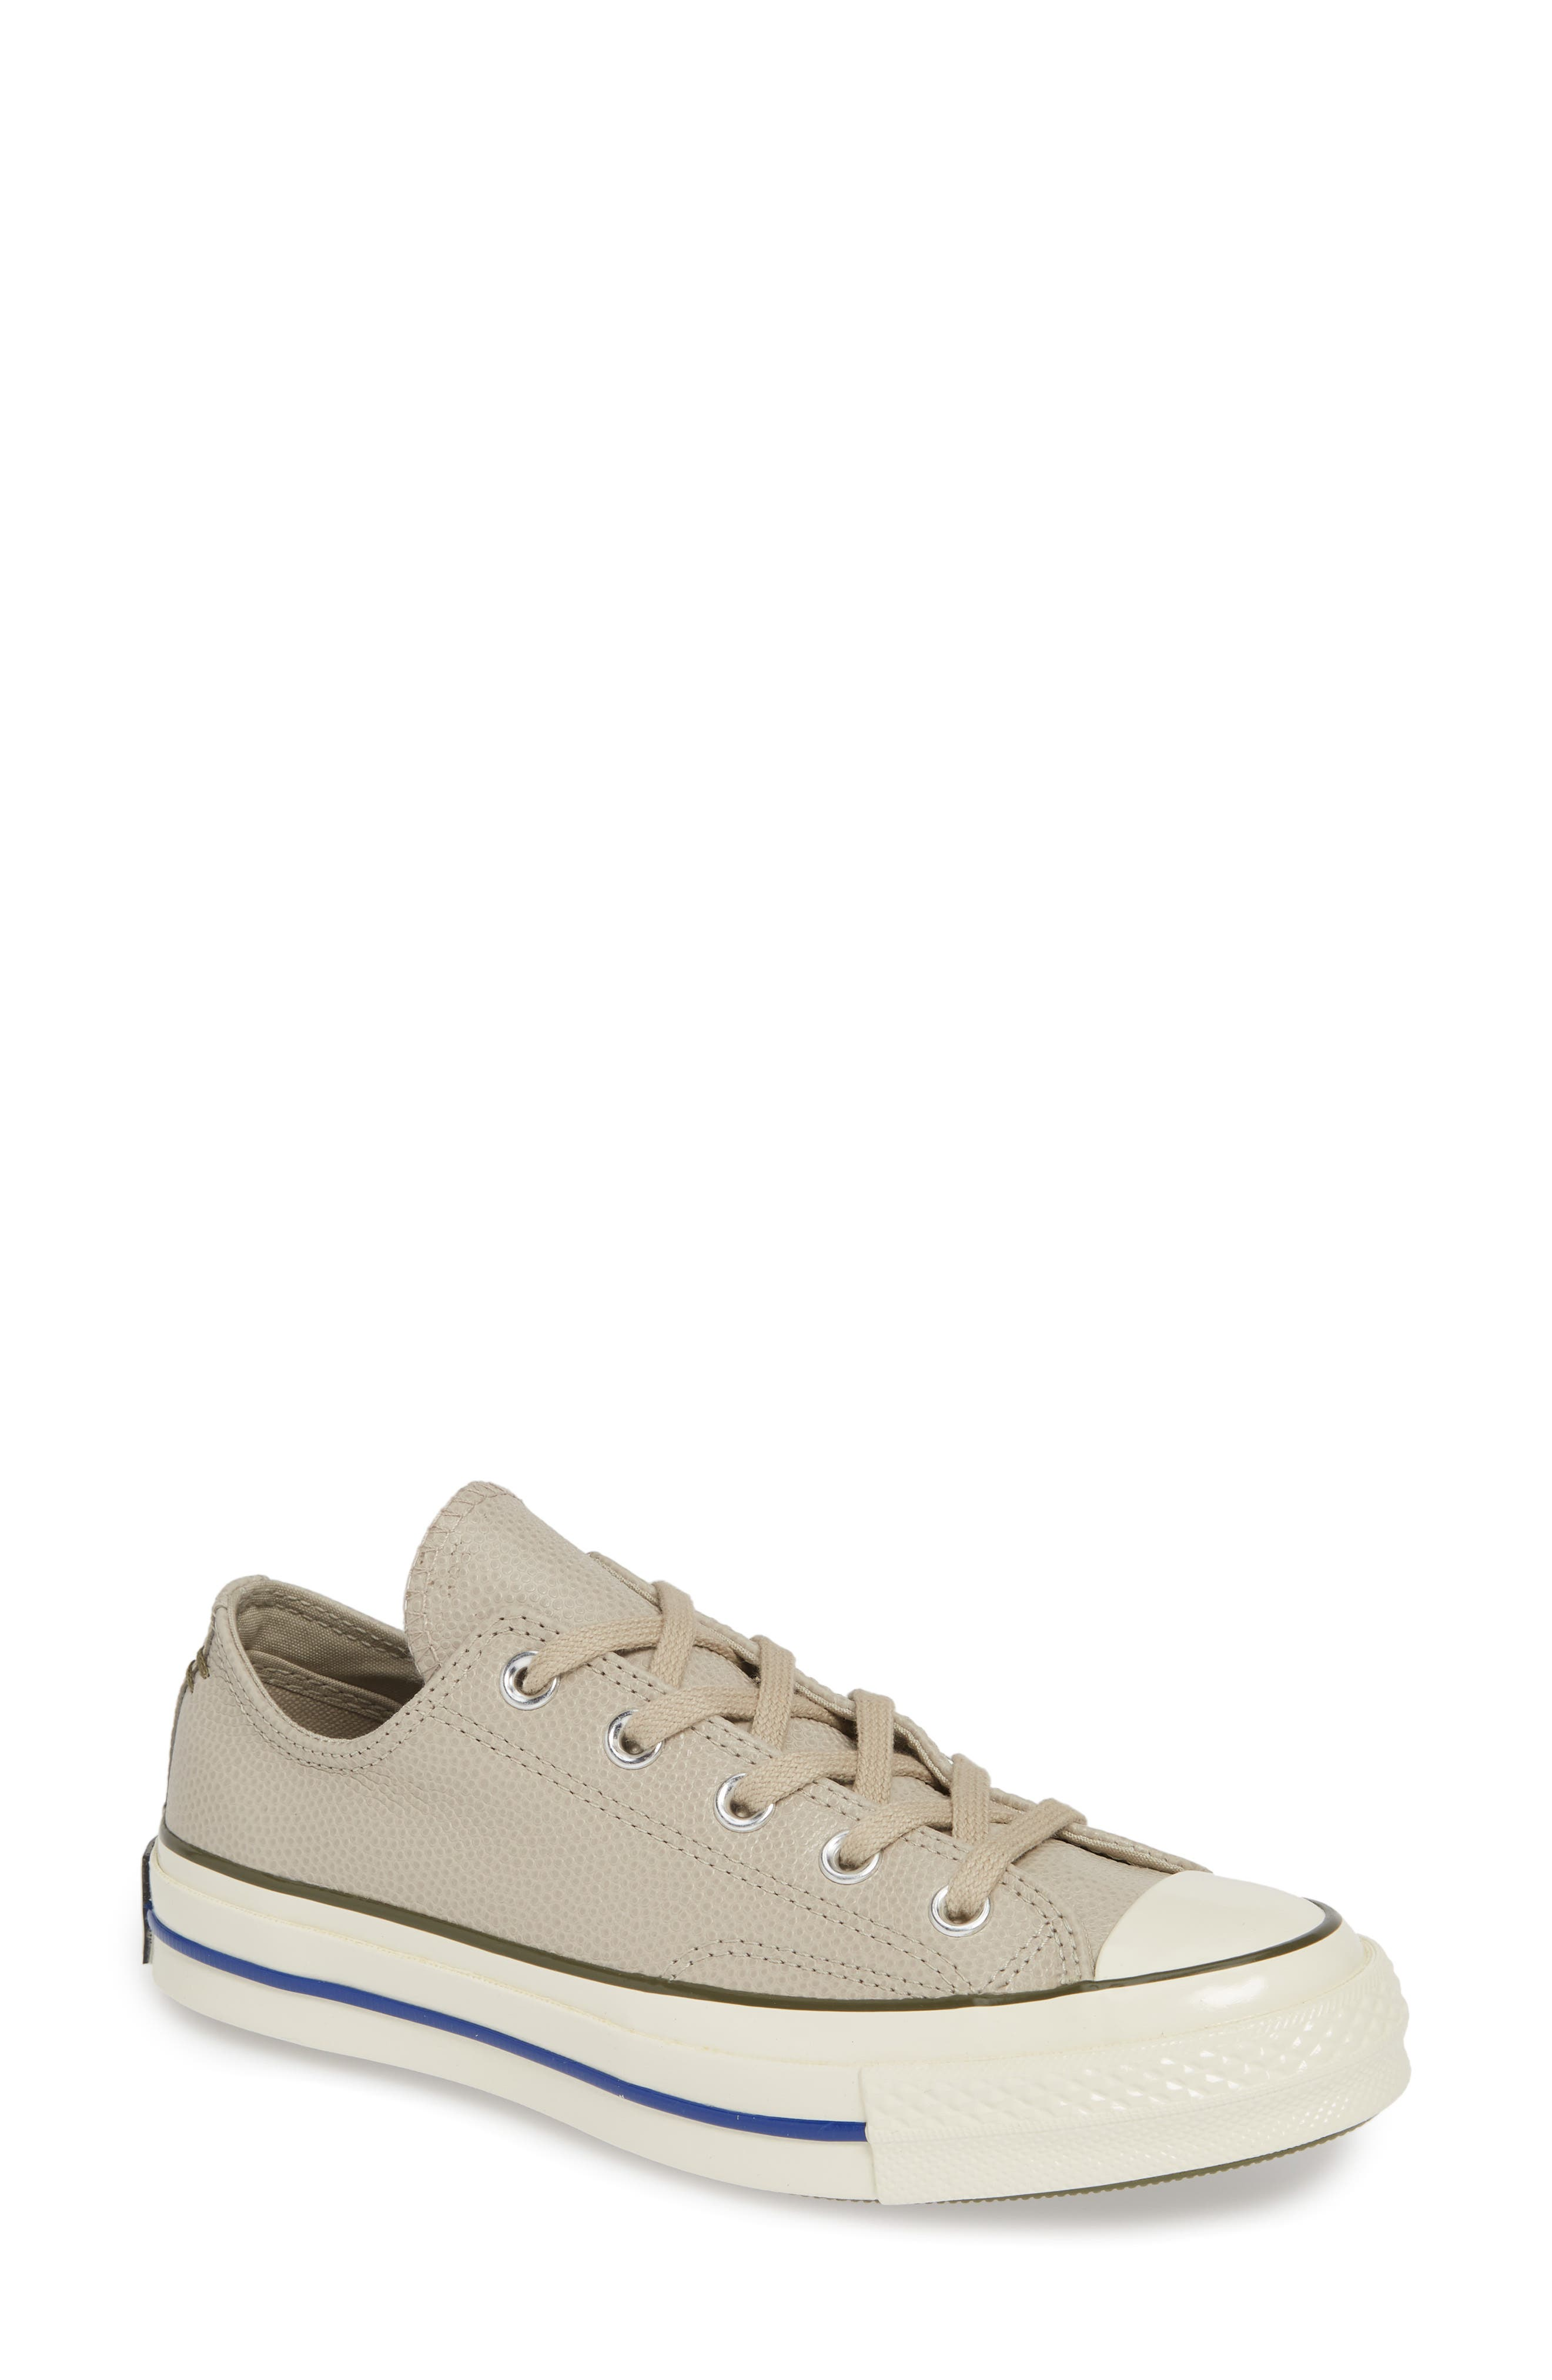 CONVERSE Chuck Taylor<sup>®</sup> All Star<sup>®</sup> Chuck 70 Ox Leather Sneaker, Main, color, PAPYRUS/ FIELD SURPLUS/ EGRET